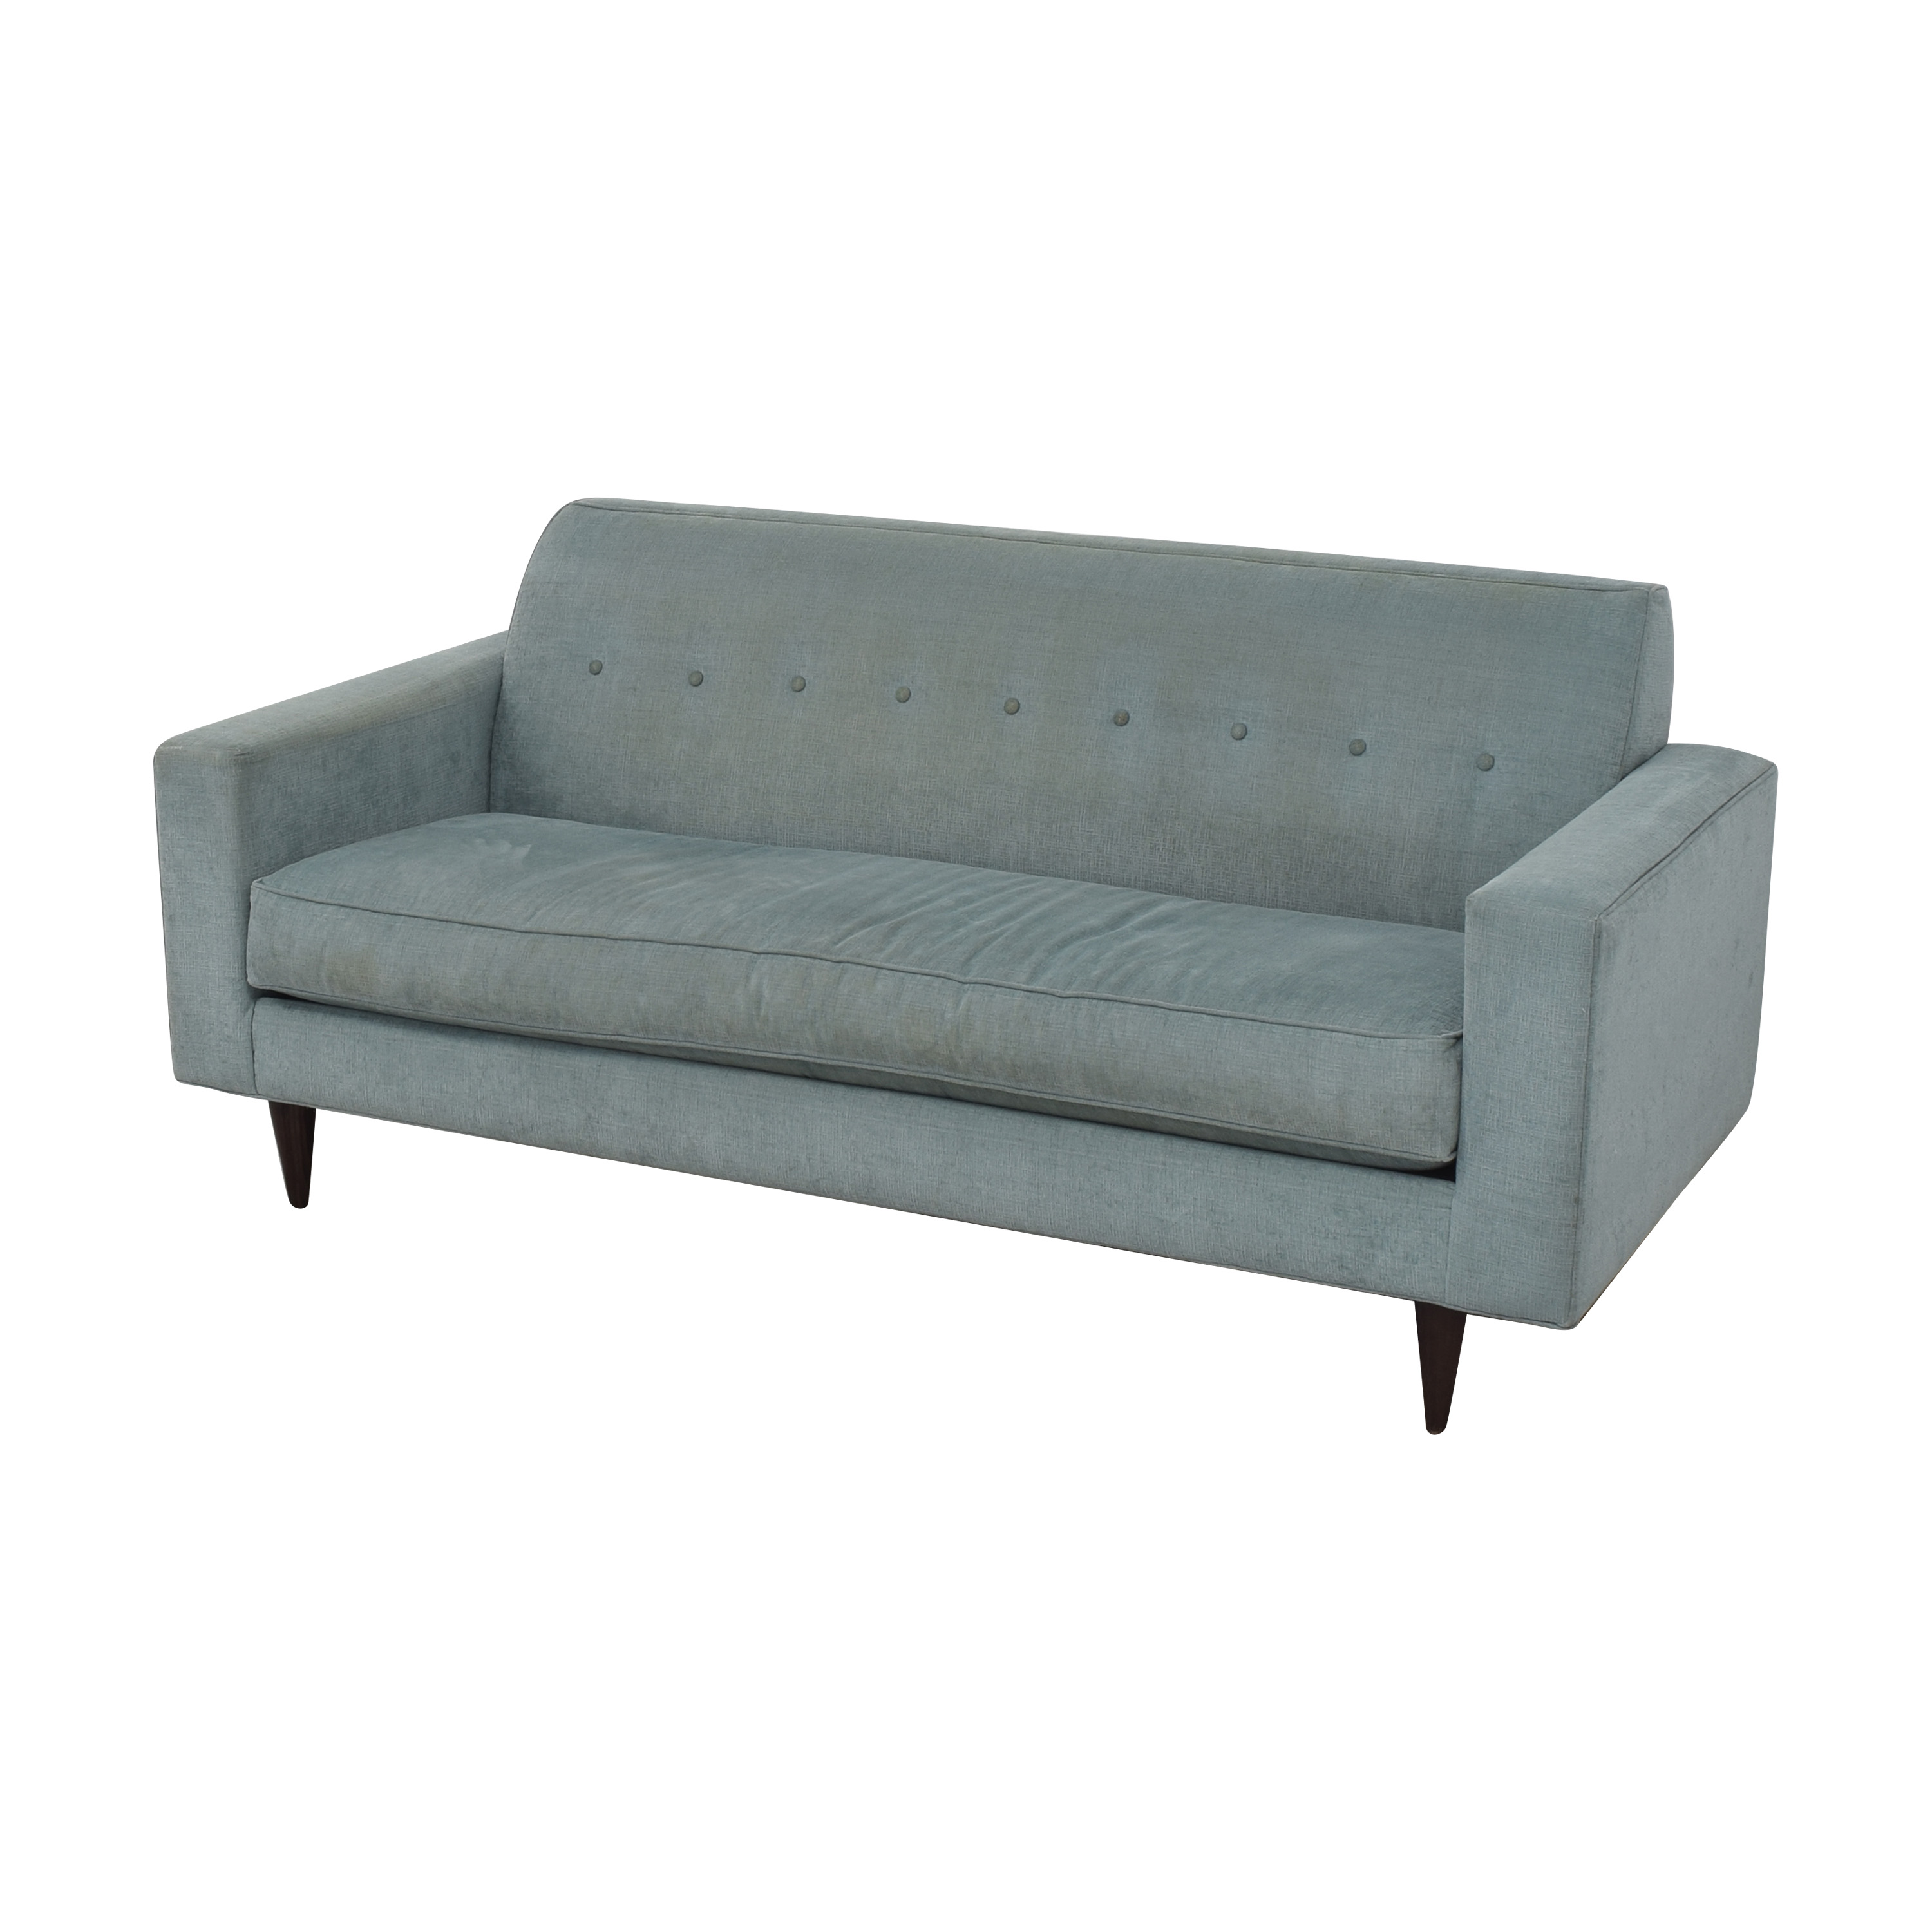 Younger Furniture Younger Furniture Micheal Sofa second hand